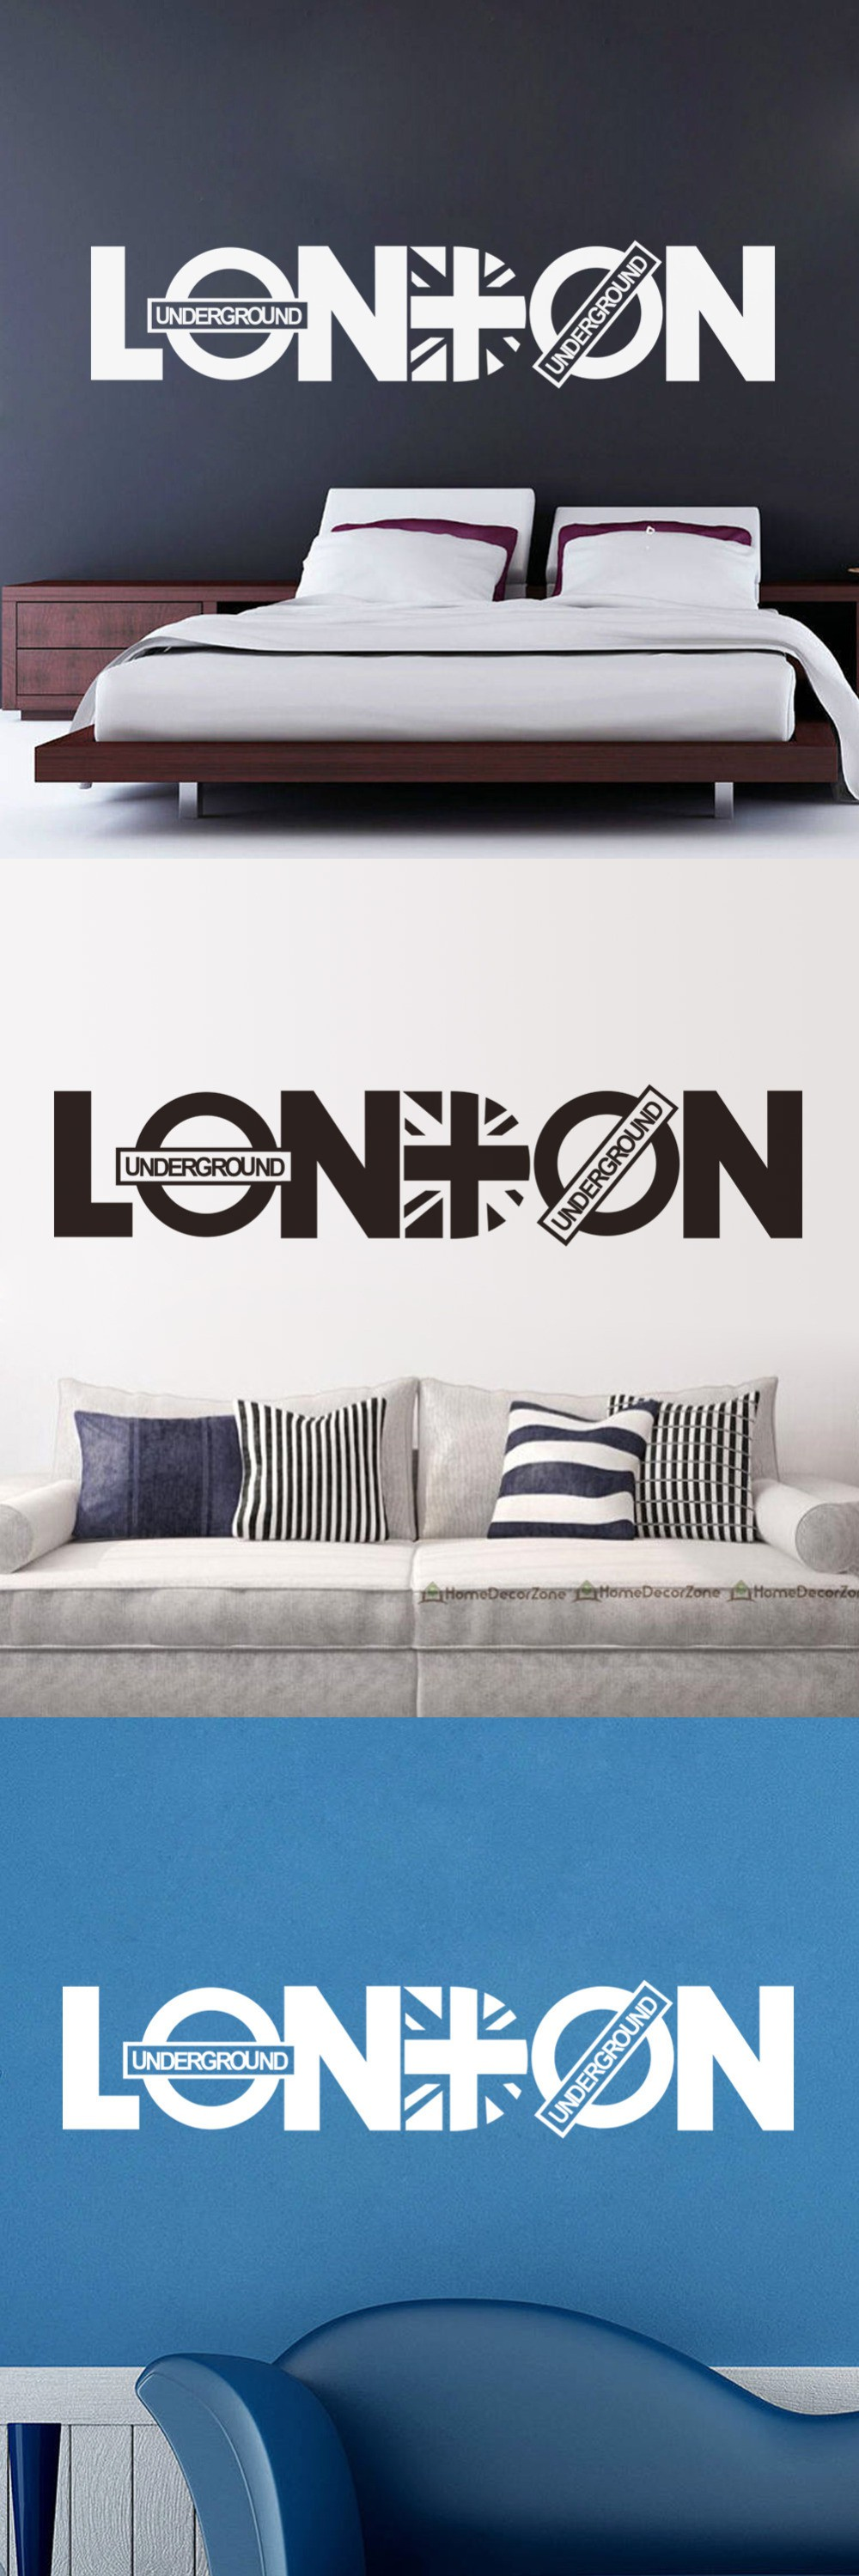 LONDON Character Home Decor Wall Sticker Creative Quotes Wall Decal Black White Color Vinyl ZY8345 $3.5